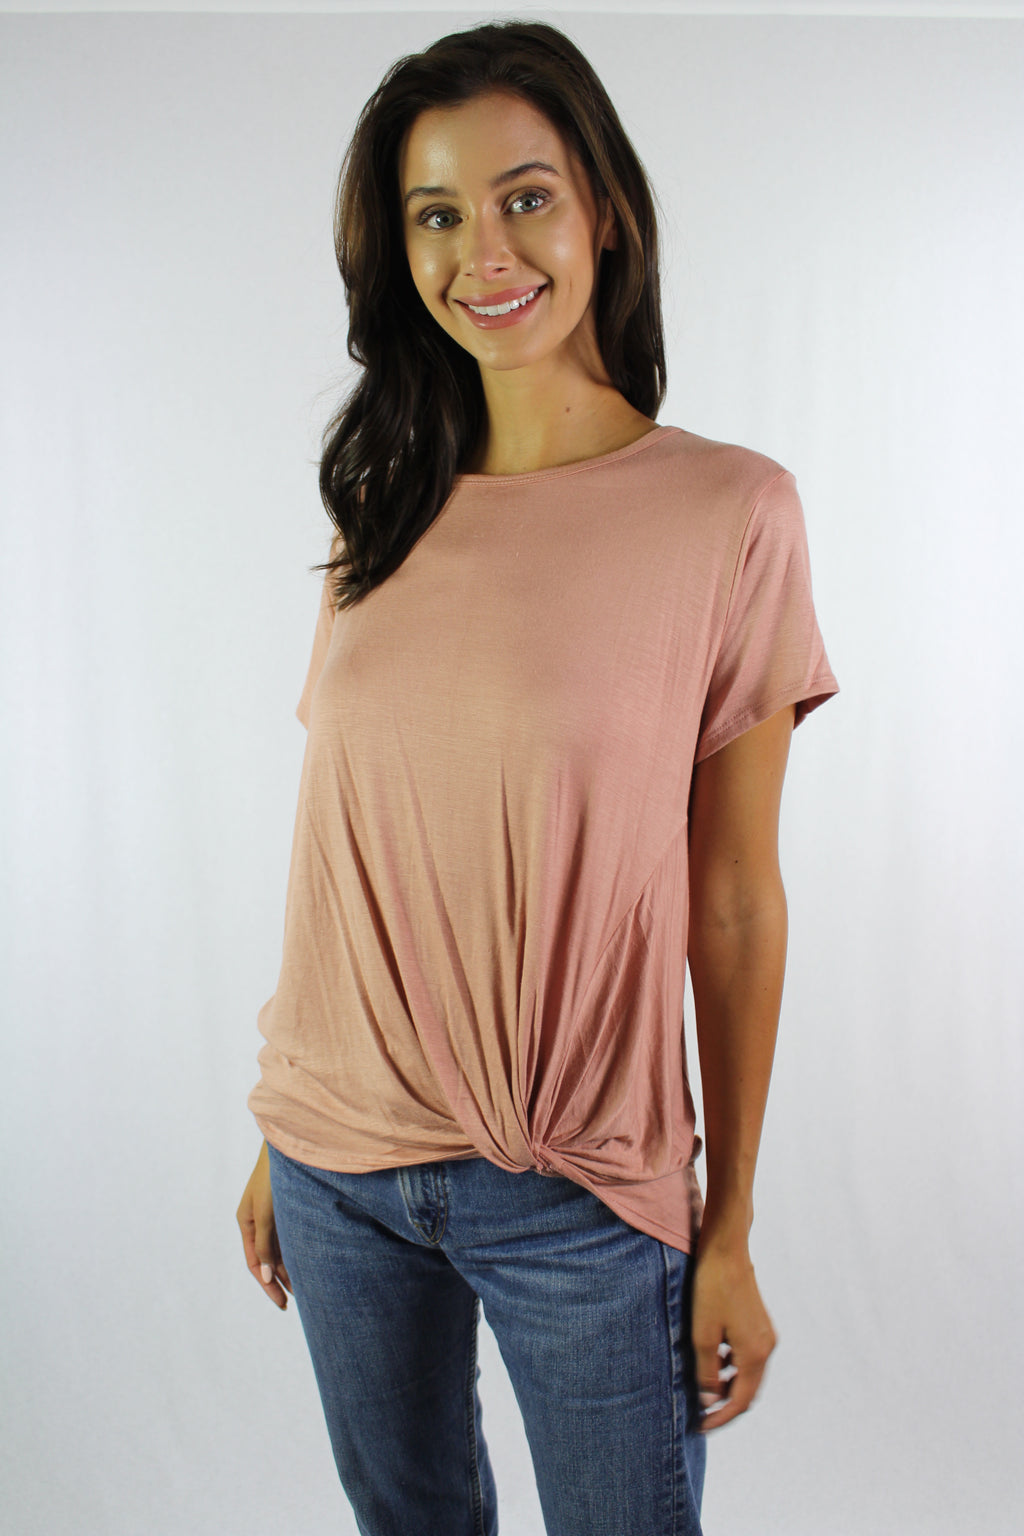 Women's Short Sleeve Round Neck Top with Front Twist